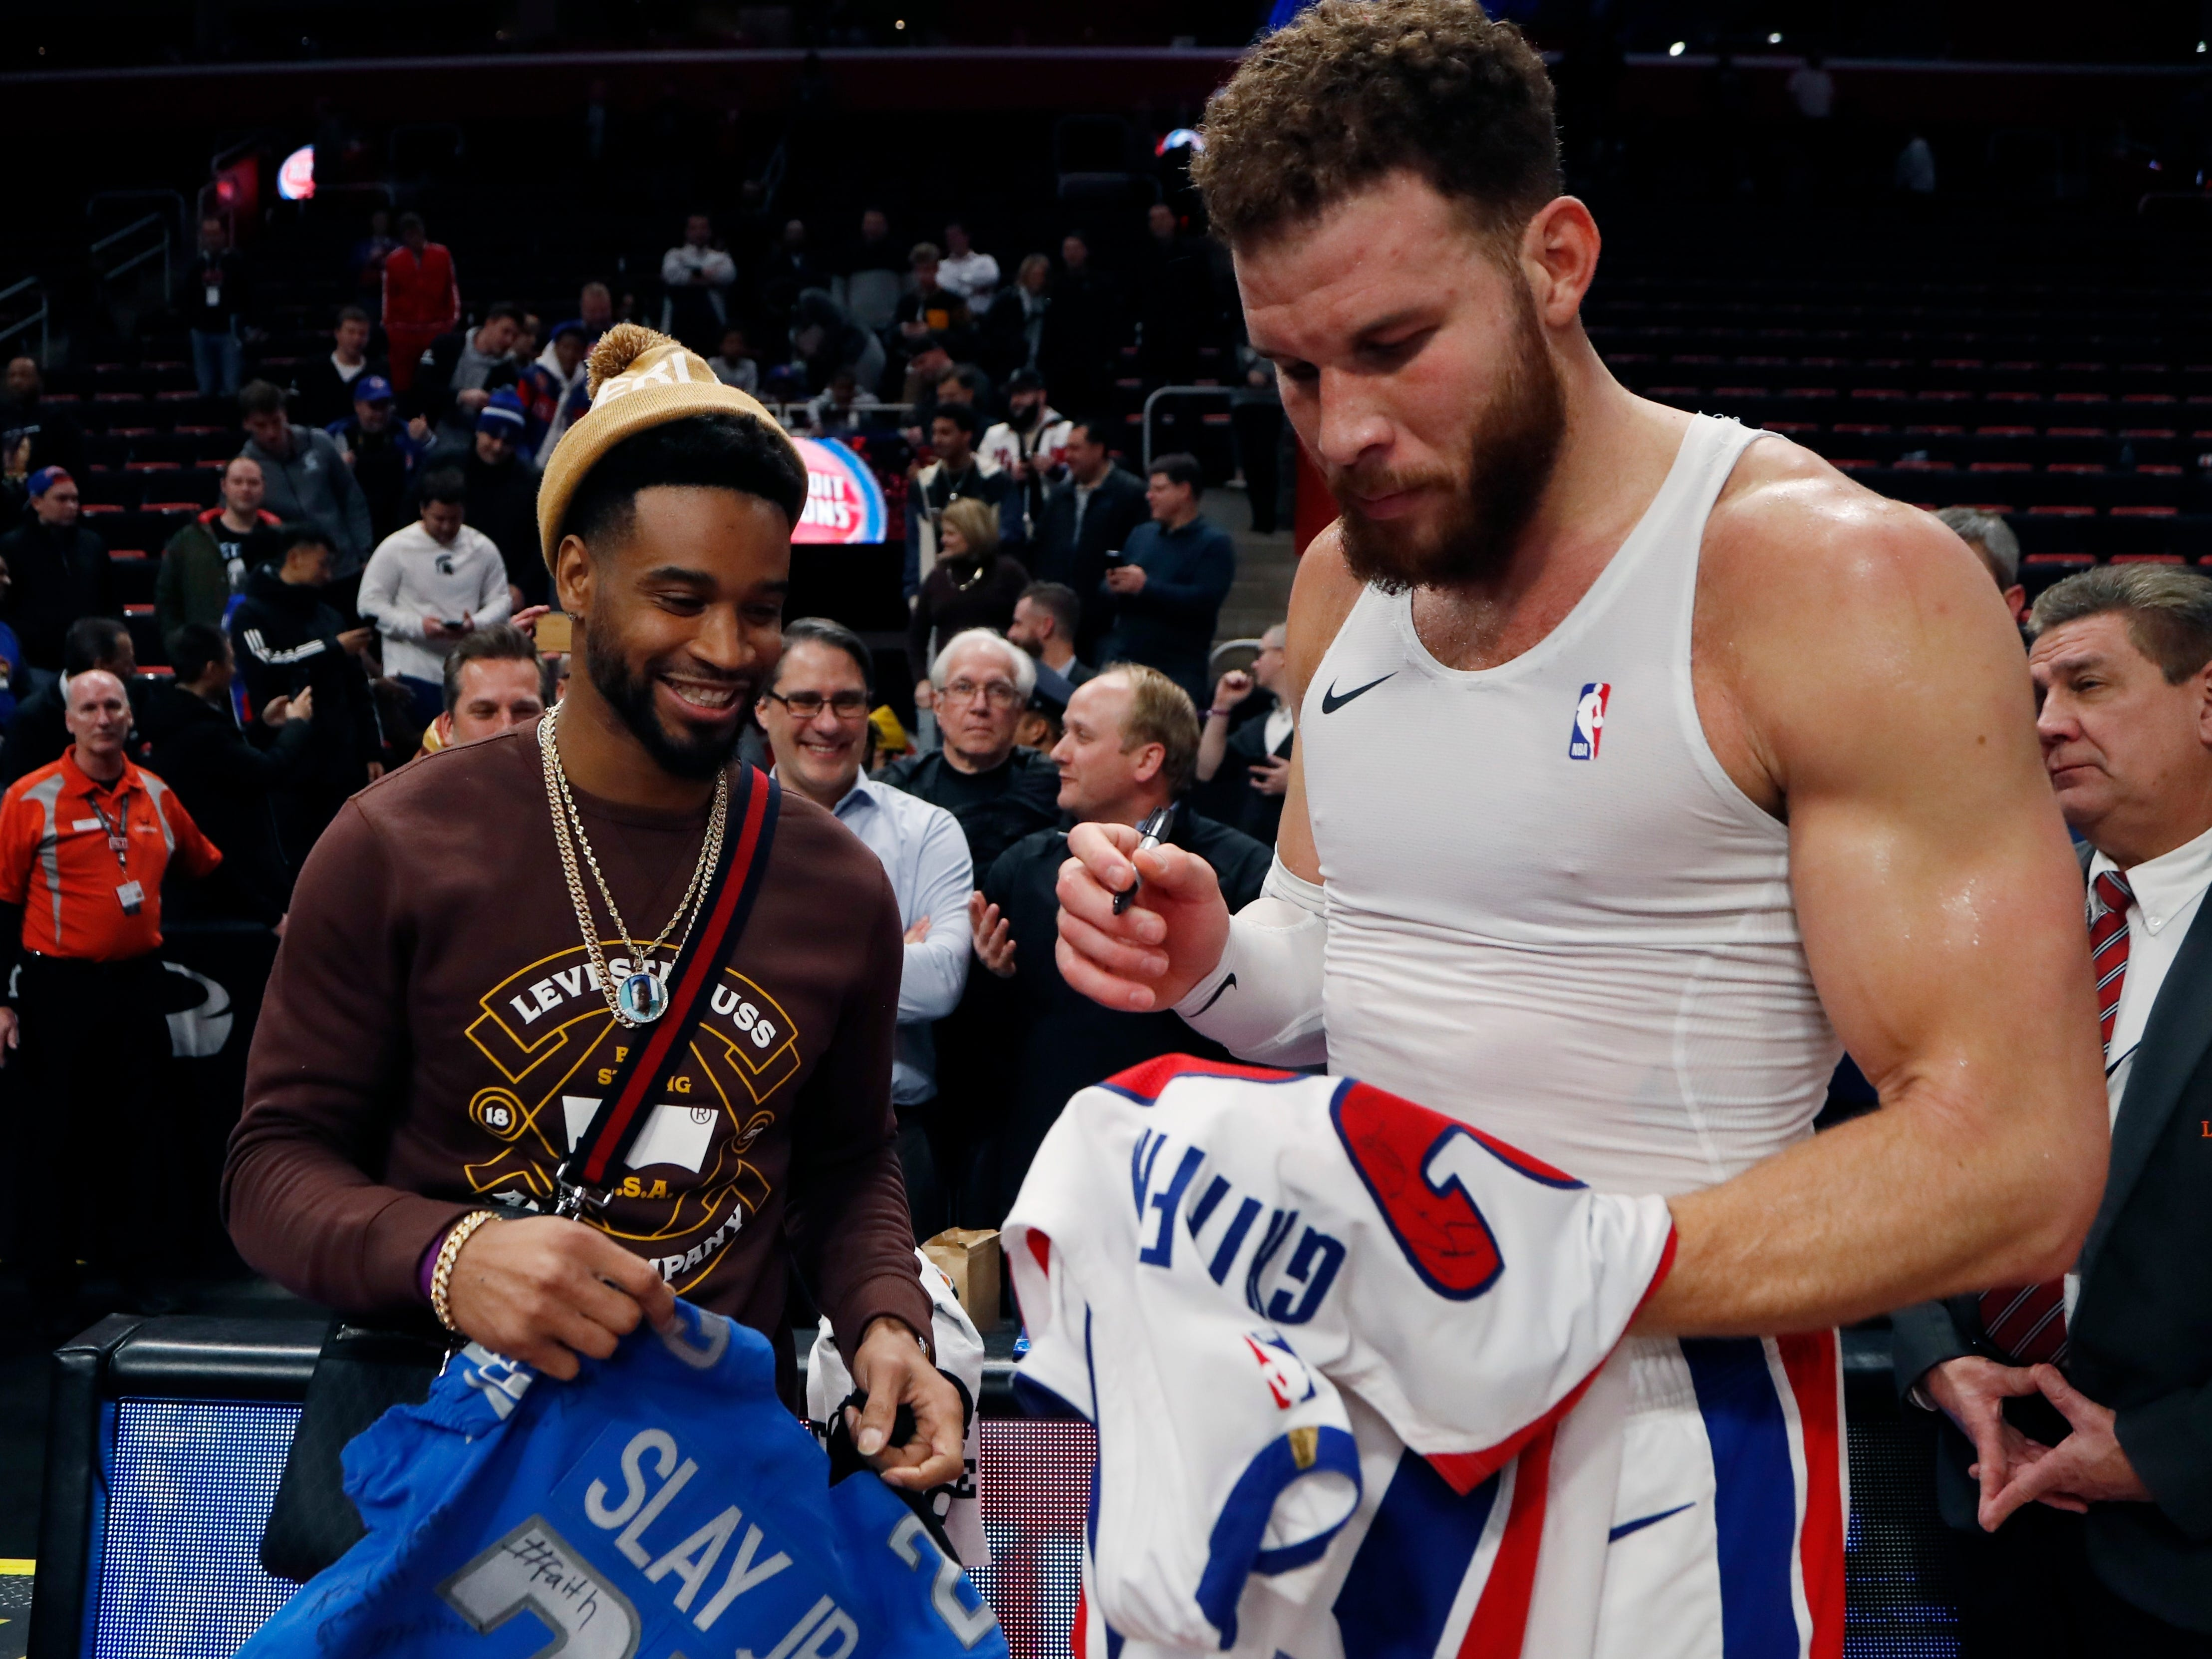 Detroit Lions cornerback Darius Slay exchanges jerseys with Detroit Pistons forward Blake Griffin (23) after the game.